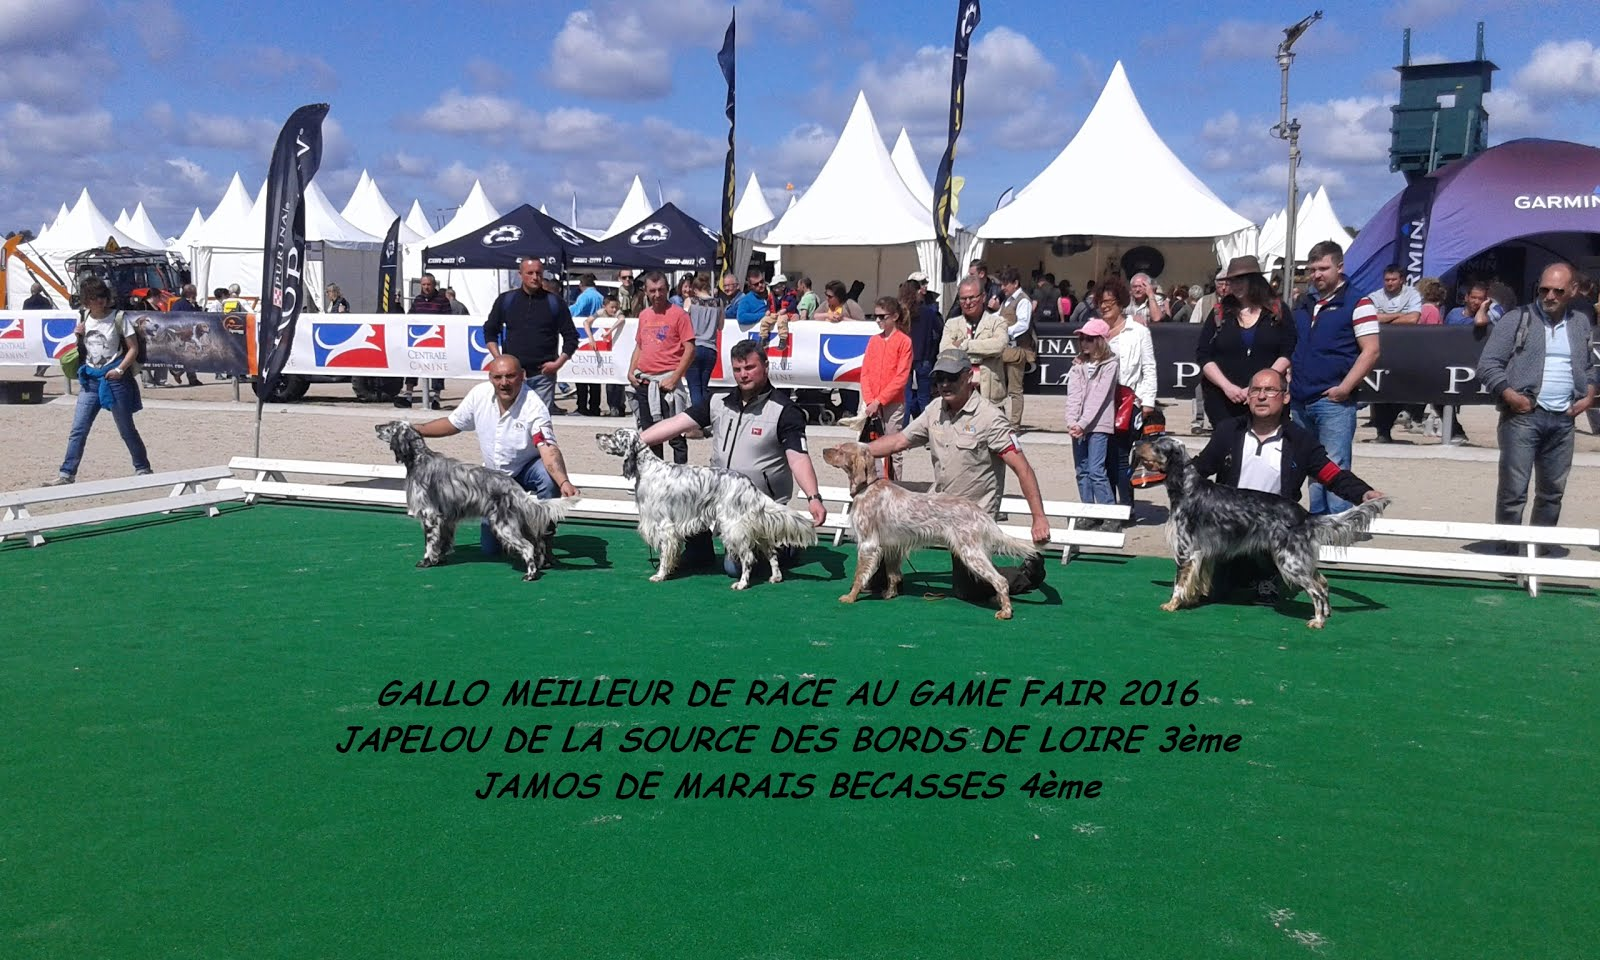 Game-Fair (LAMOTTE BEUVRON)